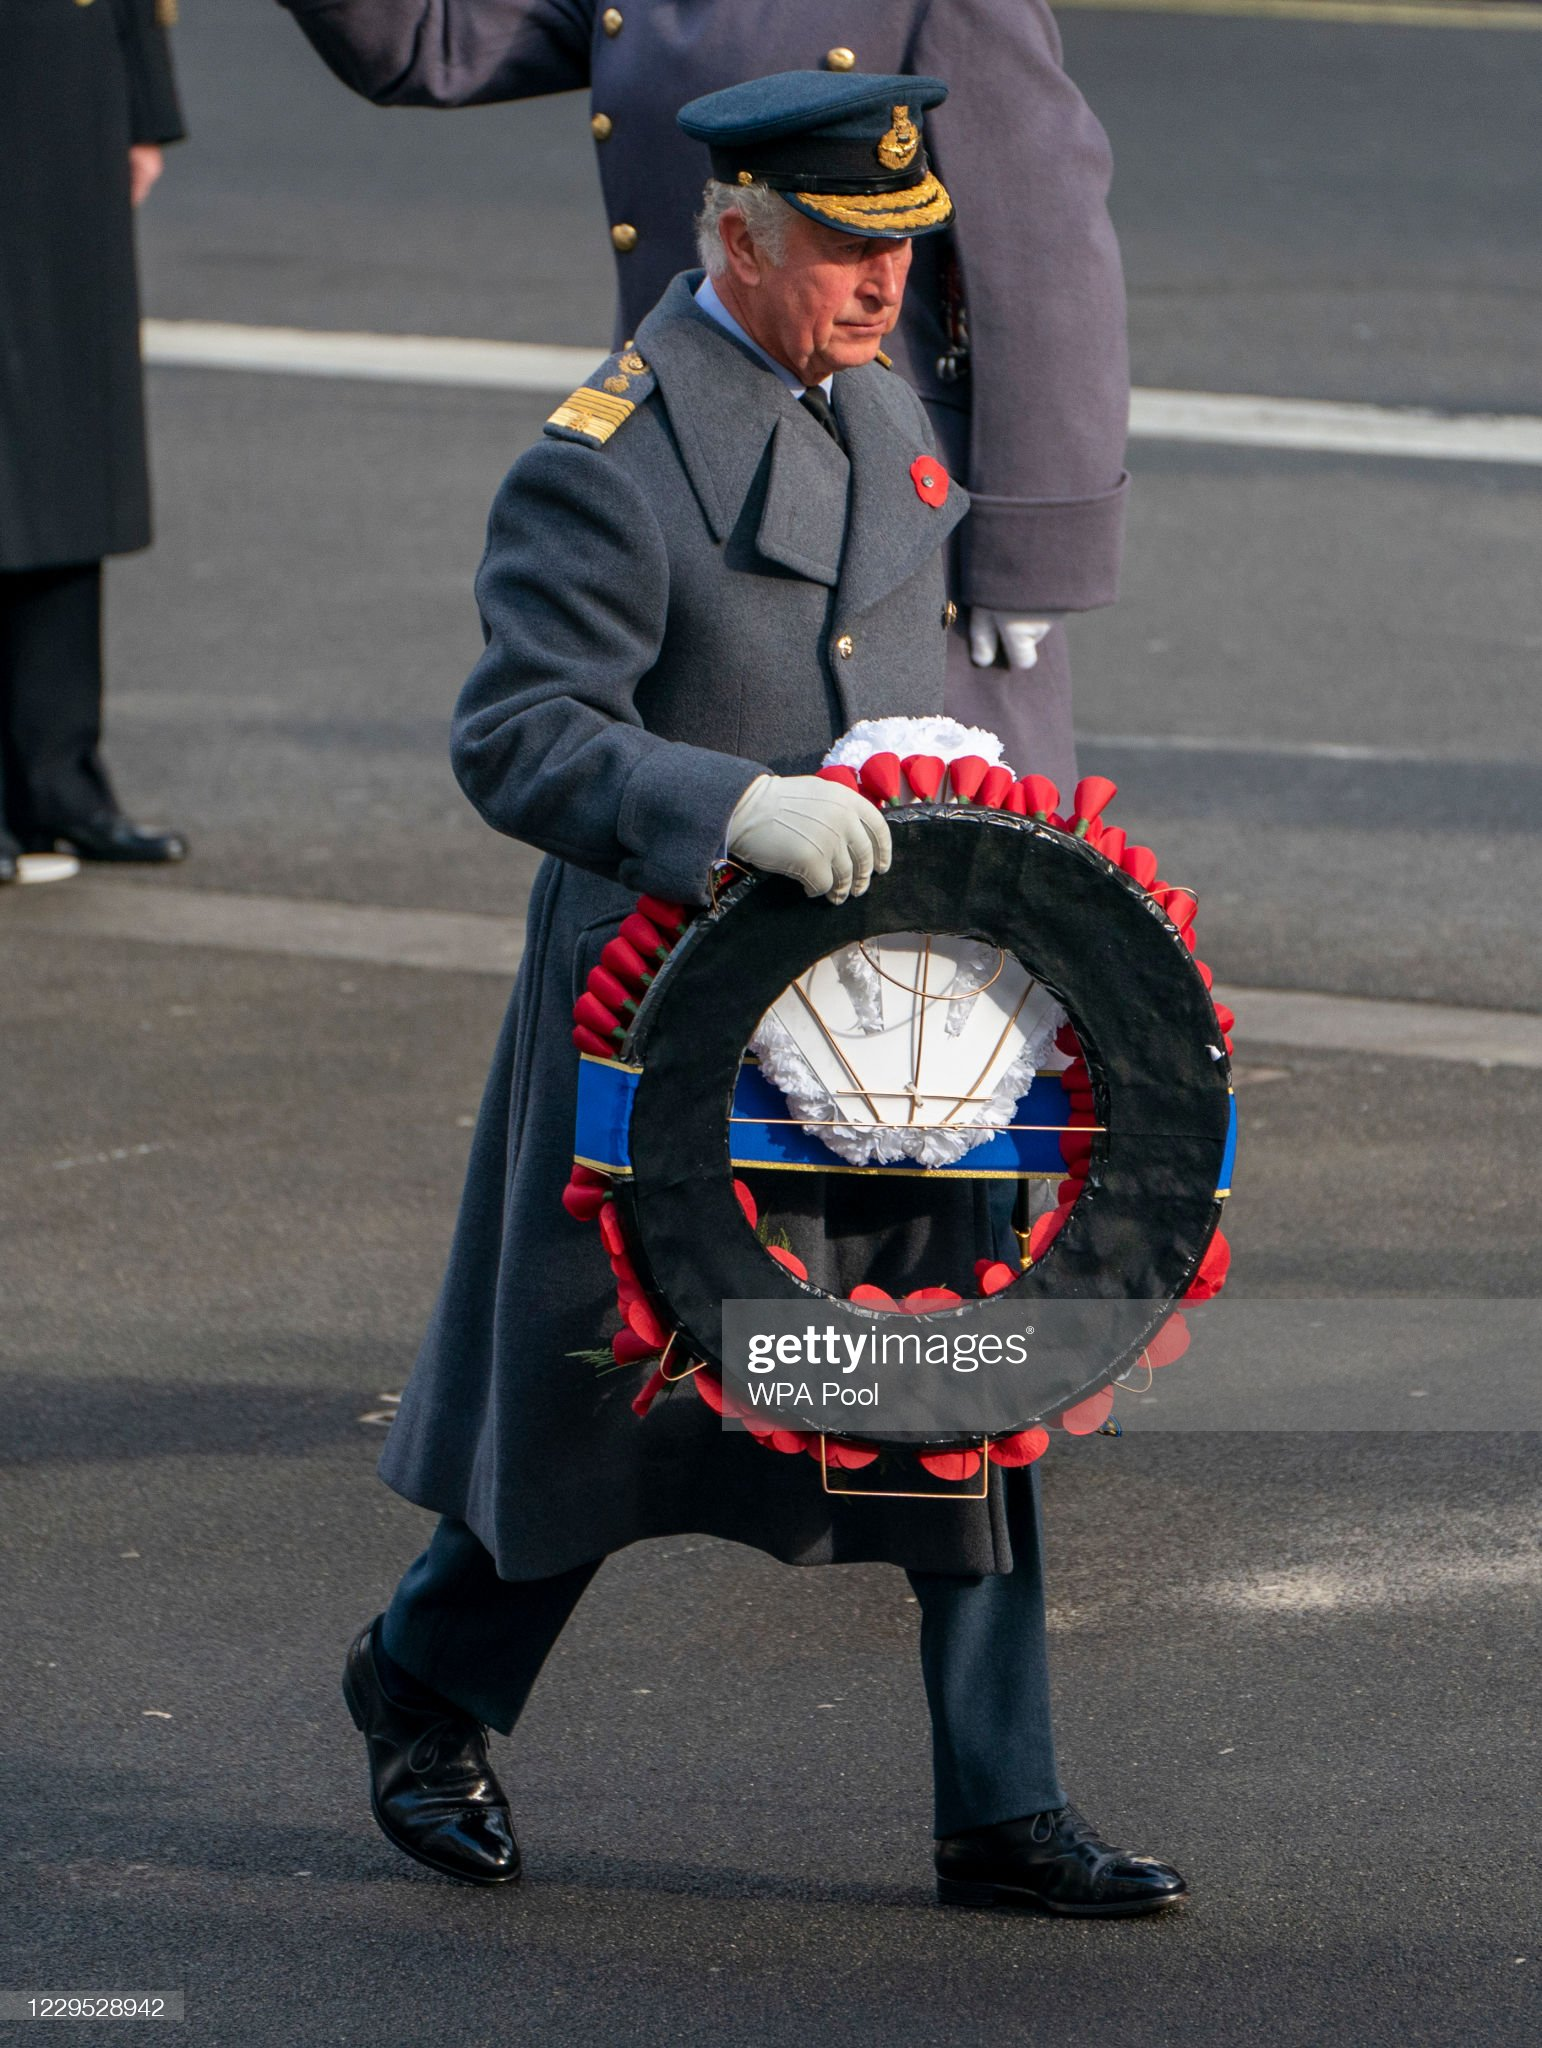 https://media.gettyimages.com/photos/britains-prince-charles-prince-of-wales-attends-the-national-service-picture-id1229528942?s=2048x2048